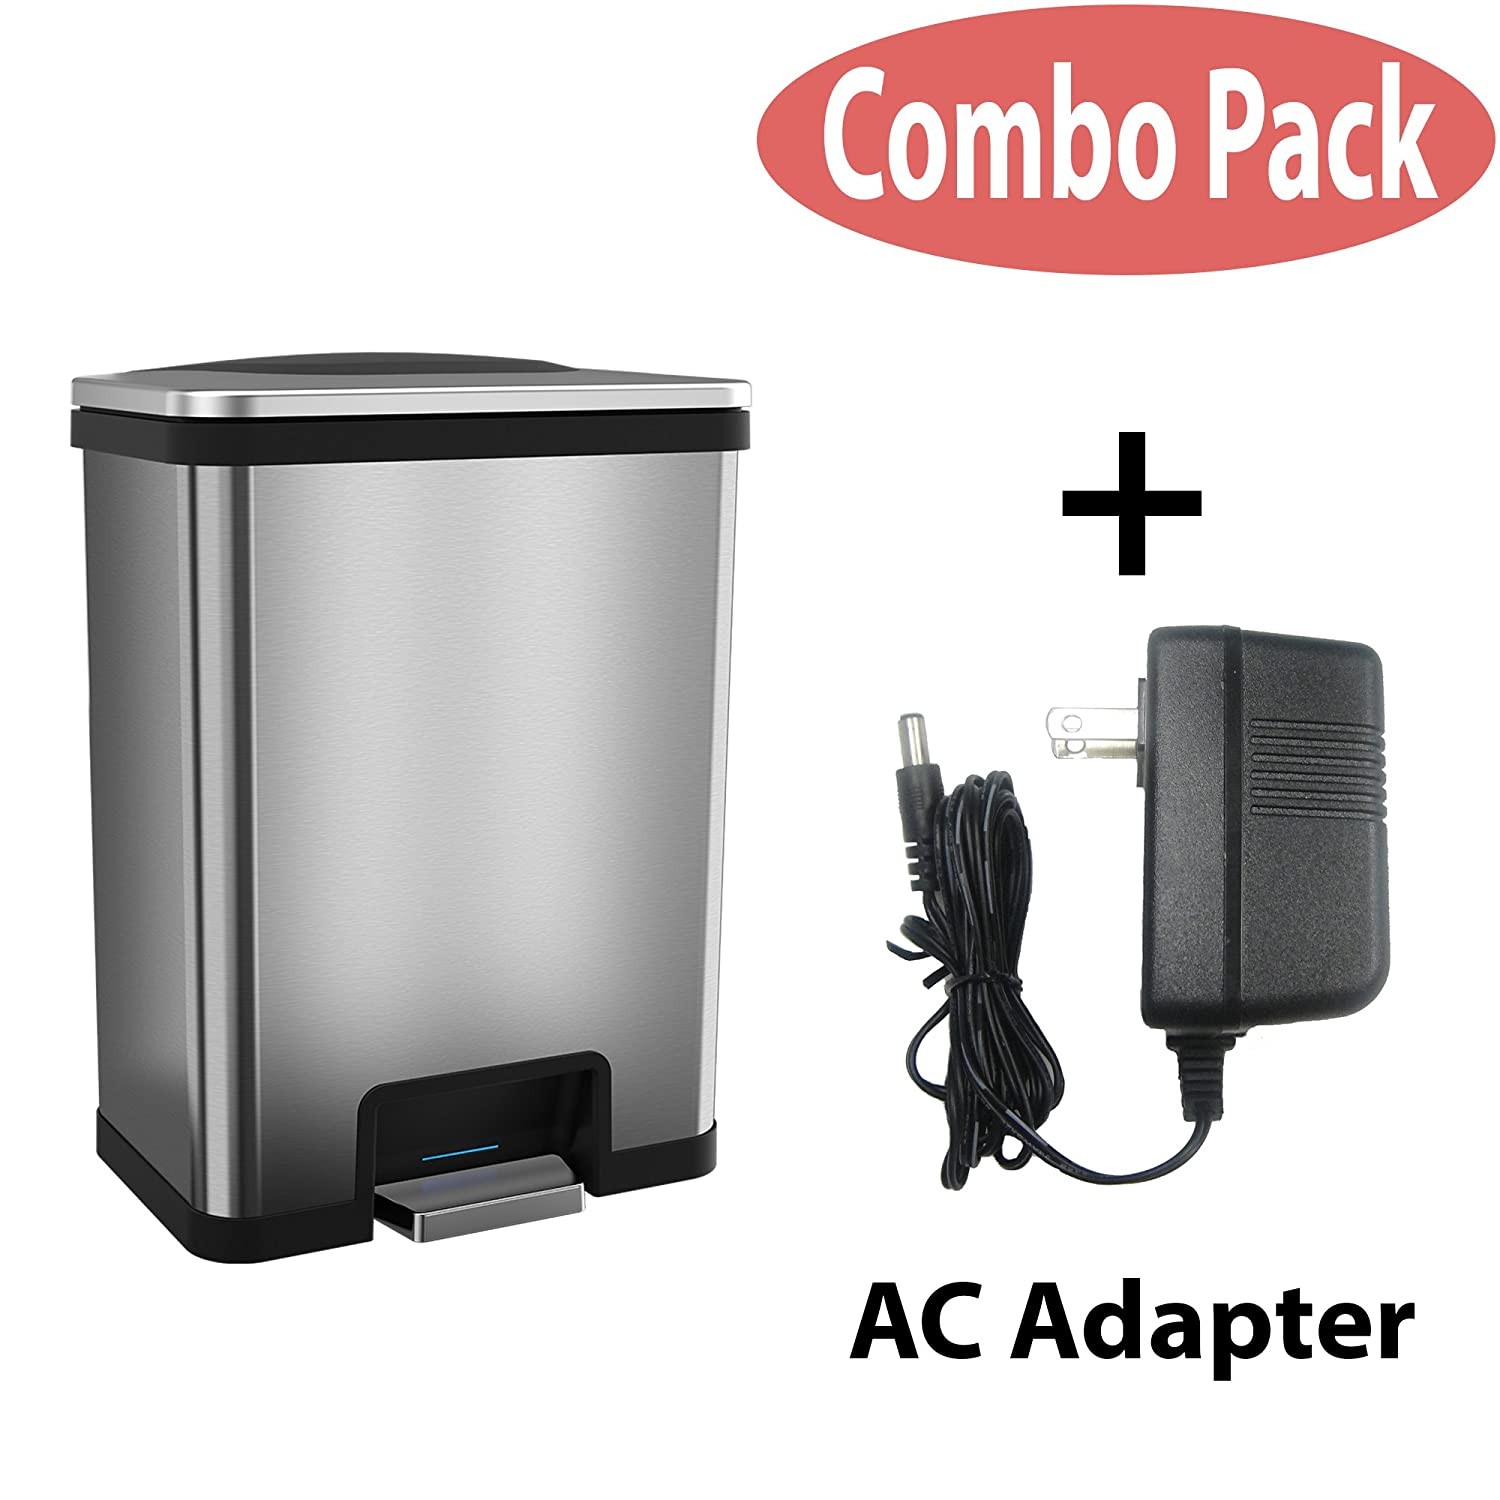 Black Trim With Ac halo TapCan 13 Gallon Effortless Trash Can with One-Tap Pedal Sensor and Odor Control System - Stainless Steel with Red Trim